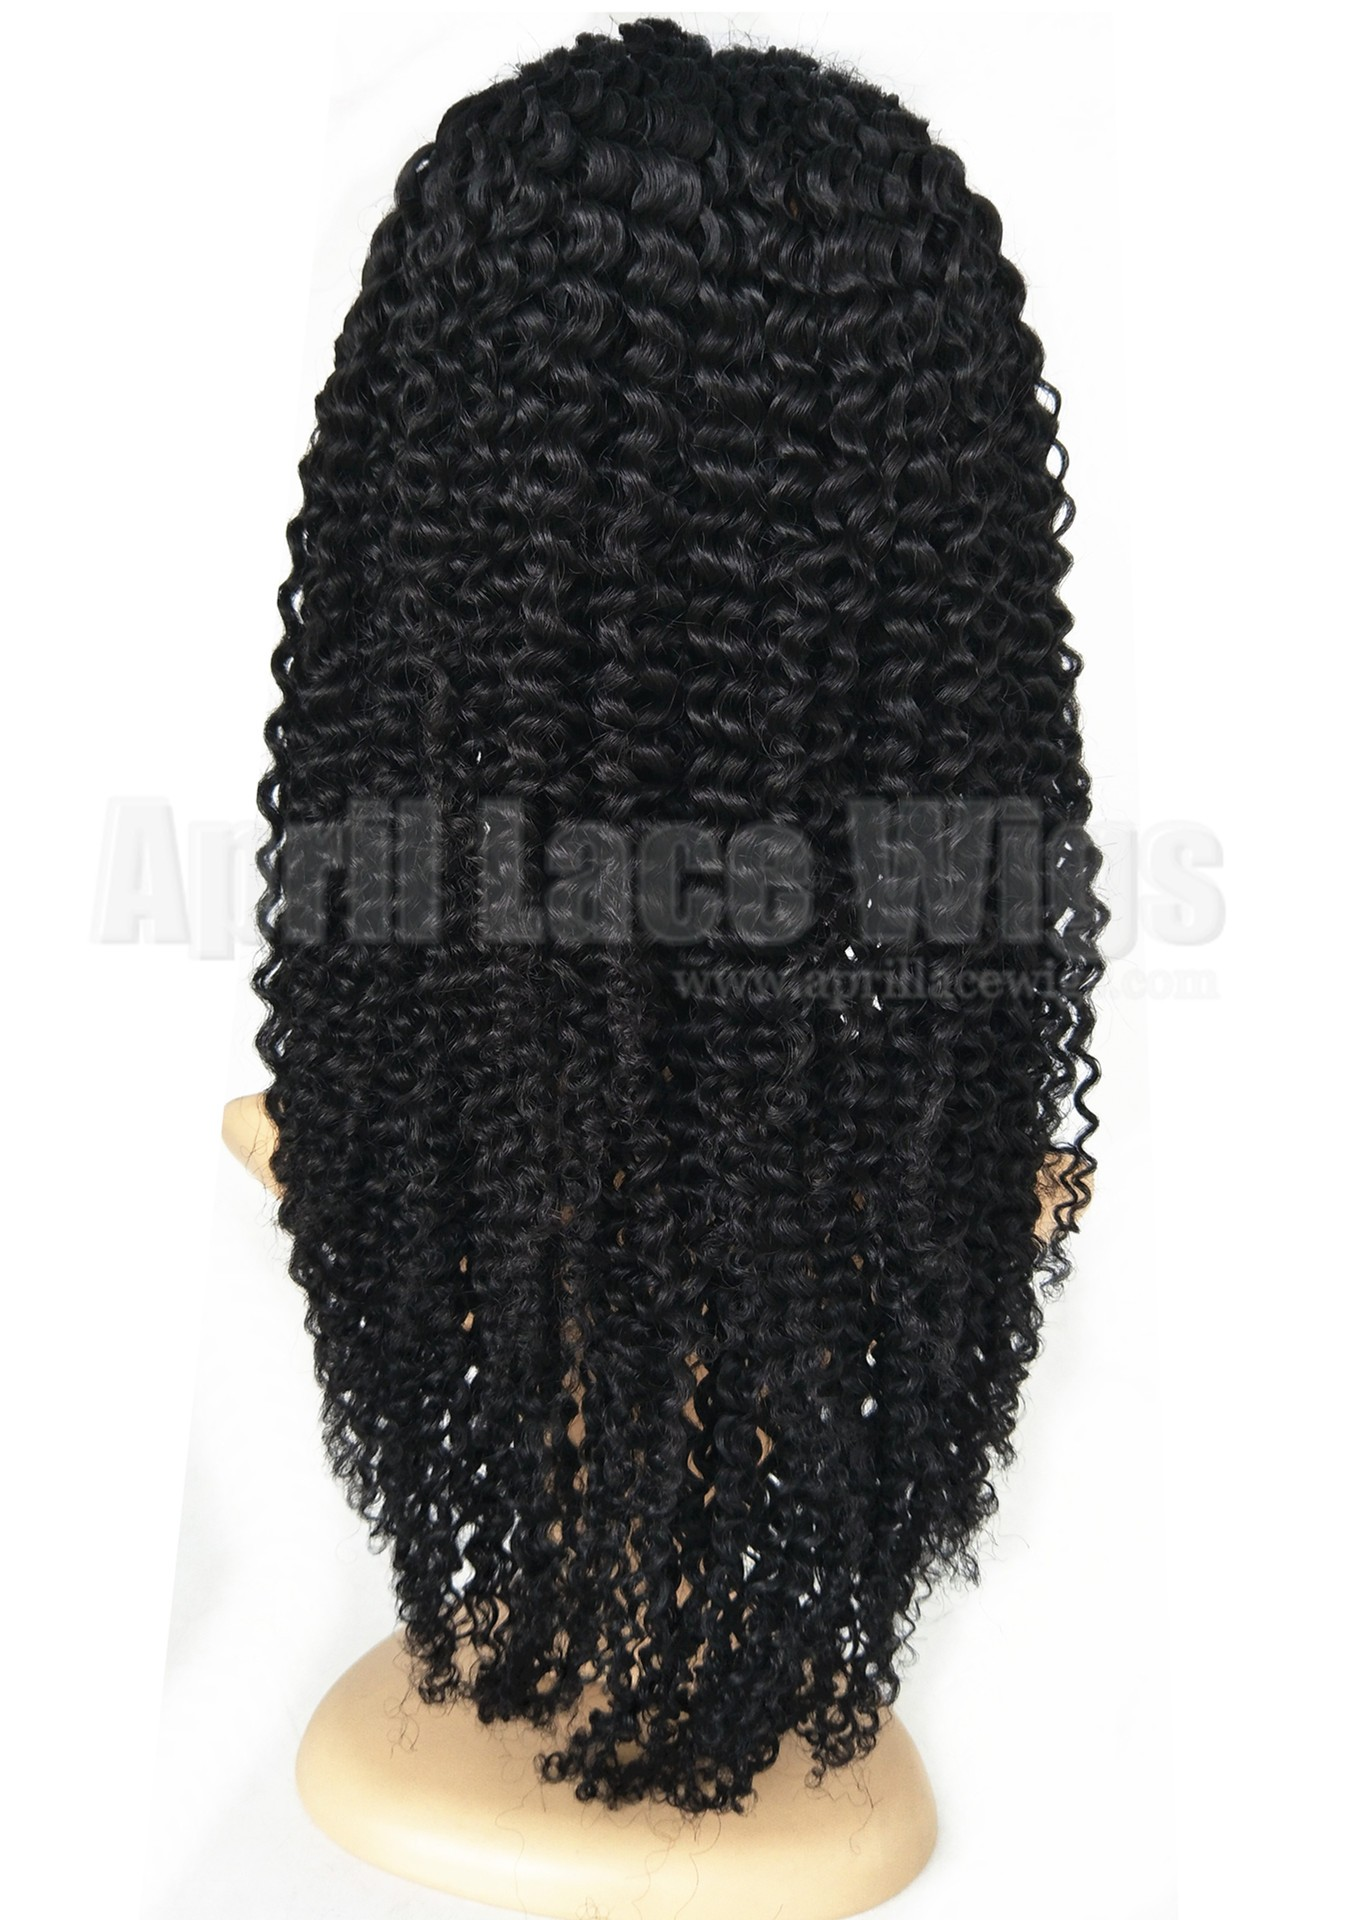 Jerry curl lace front wig for black women